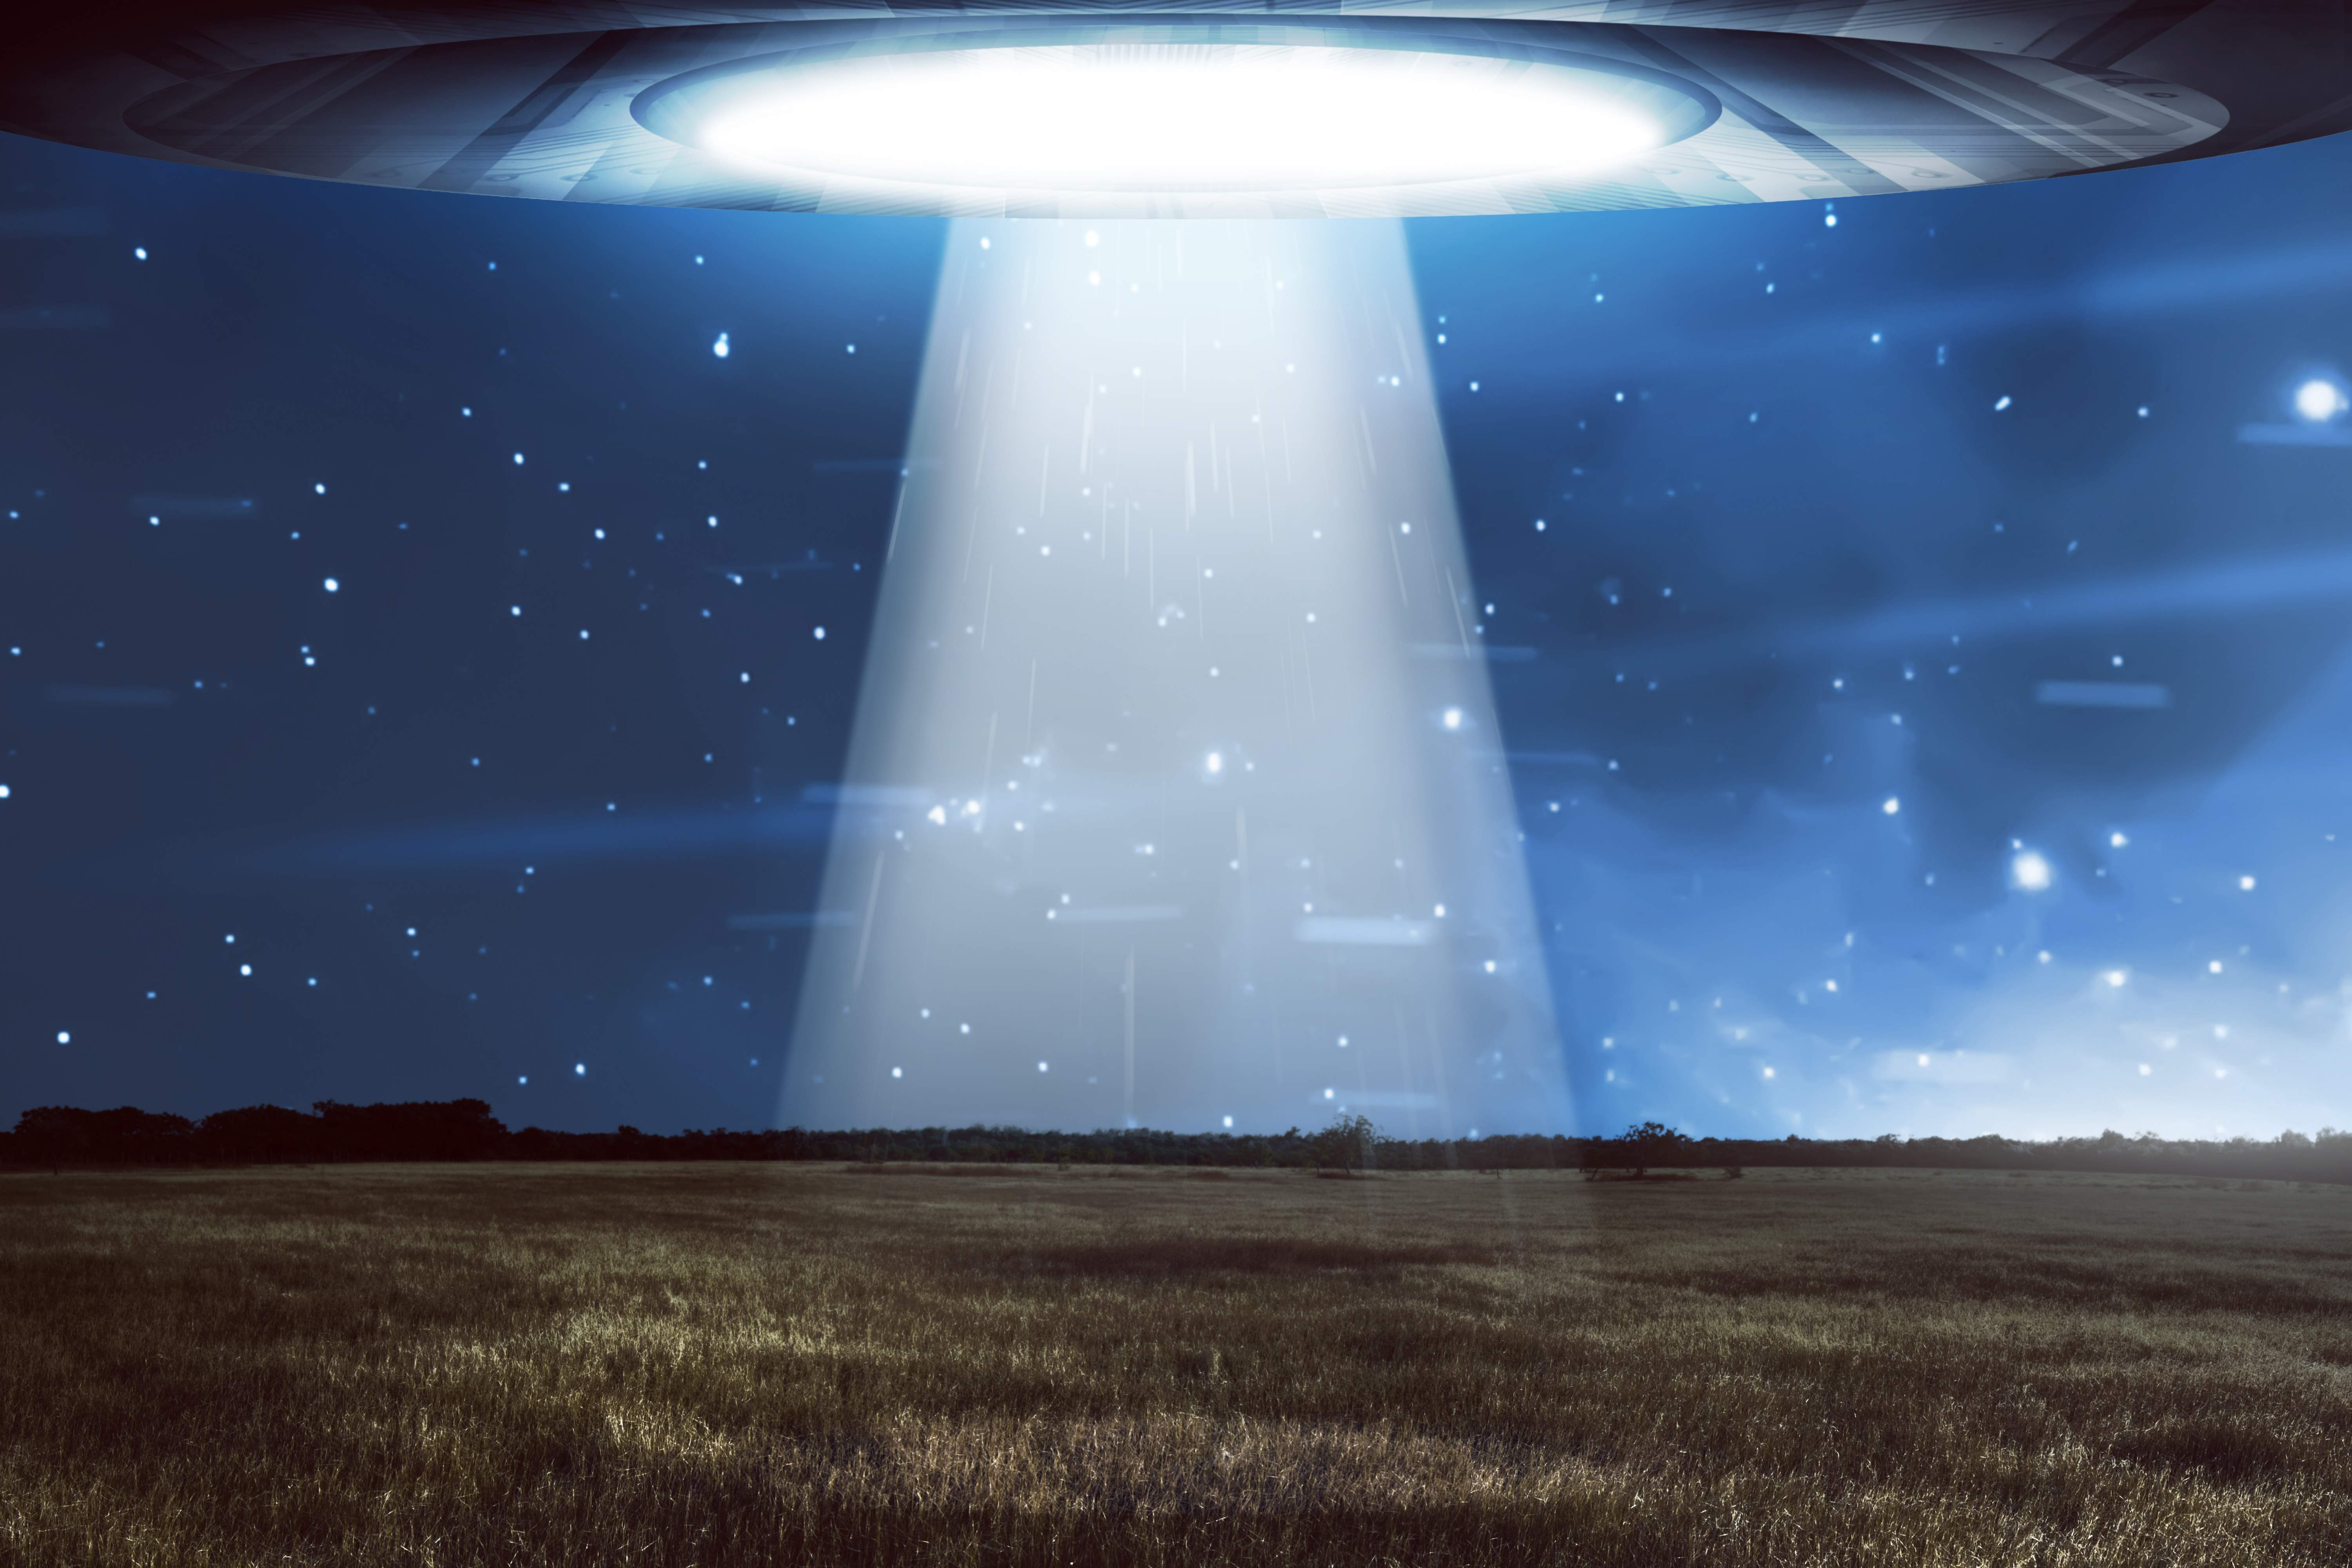 Alien spaceship may lay off Florida coast, says Discovery